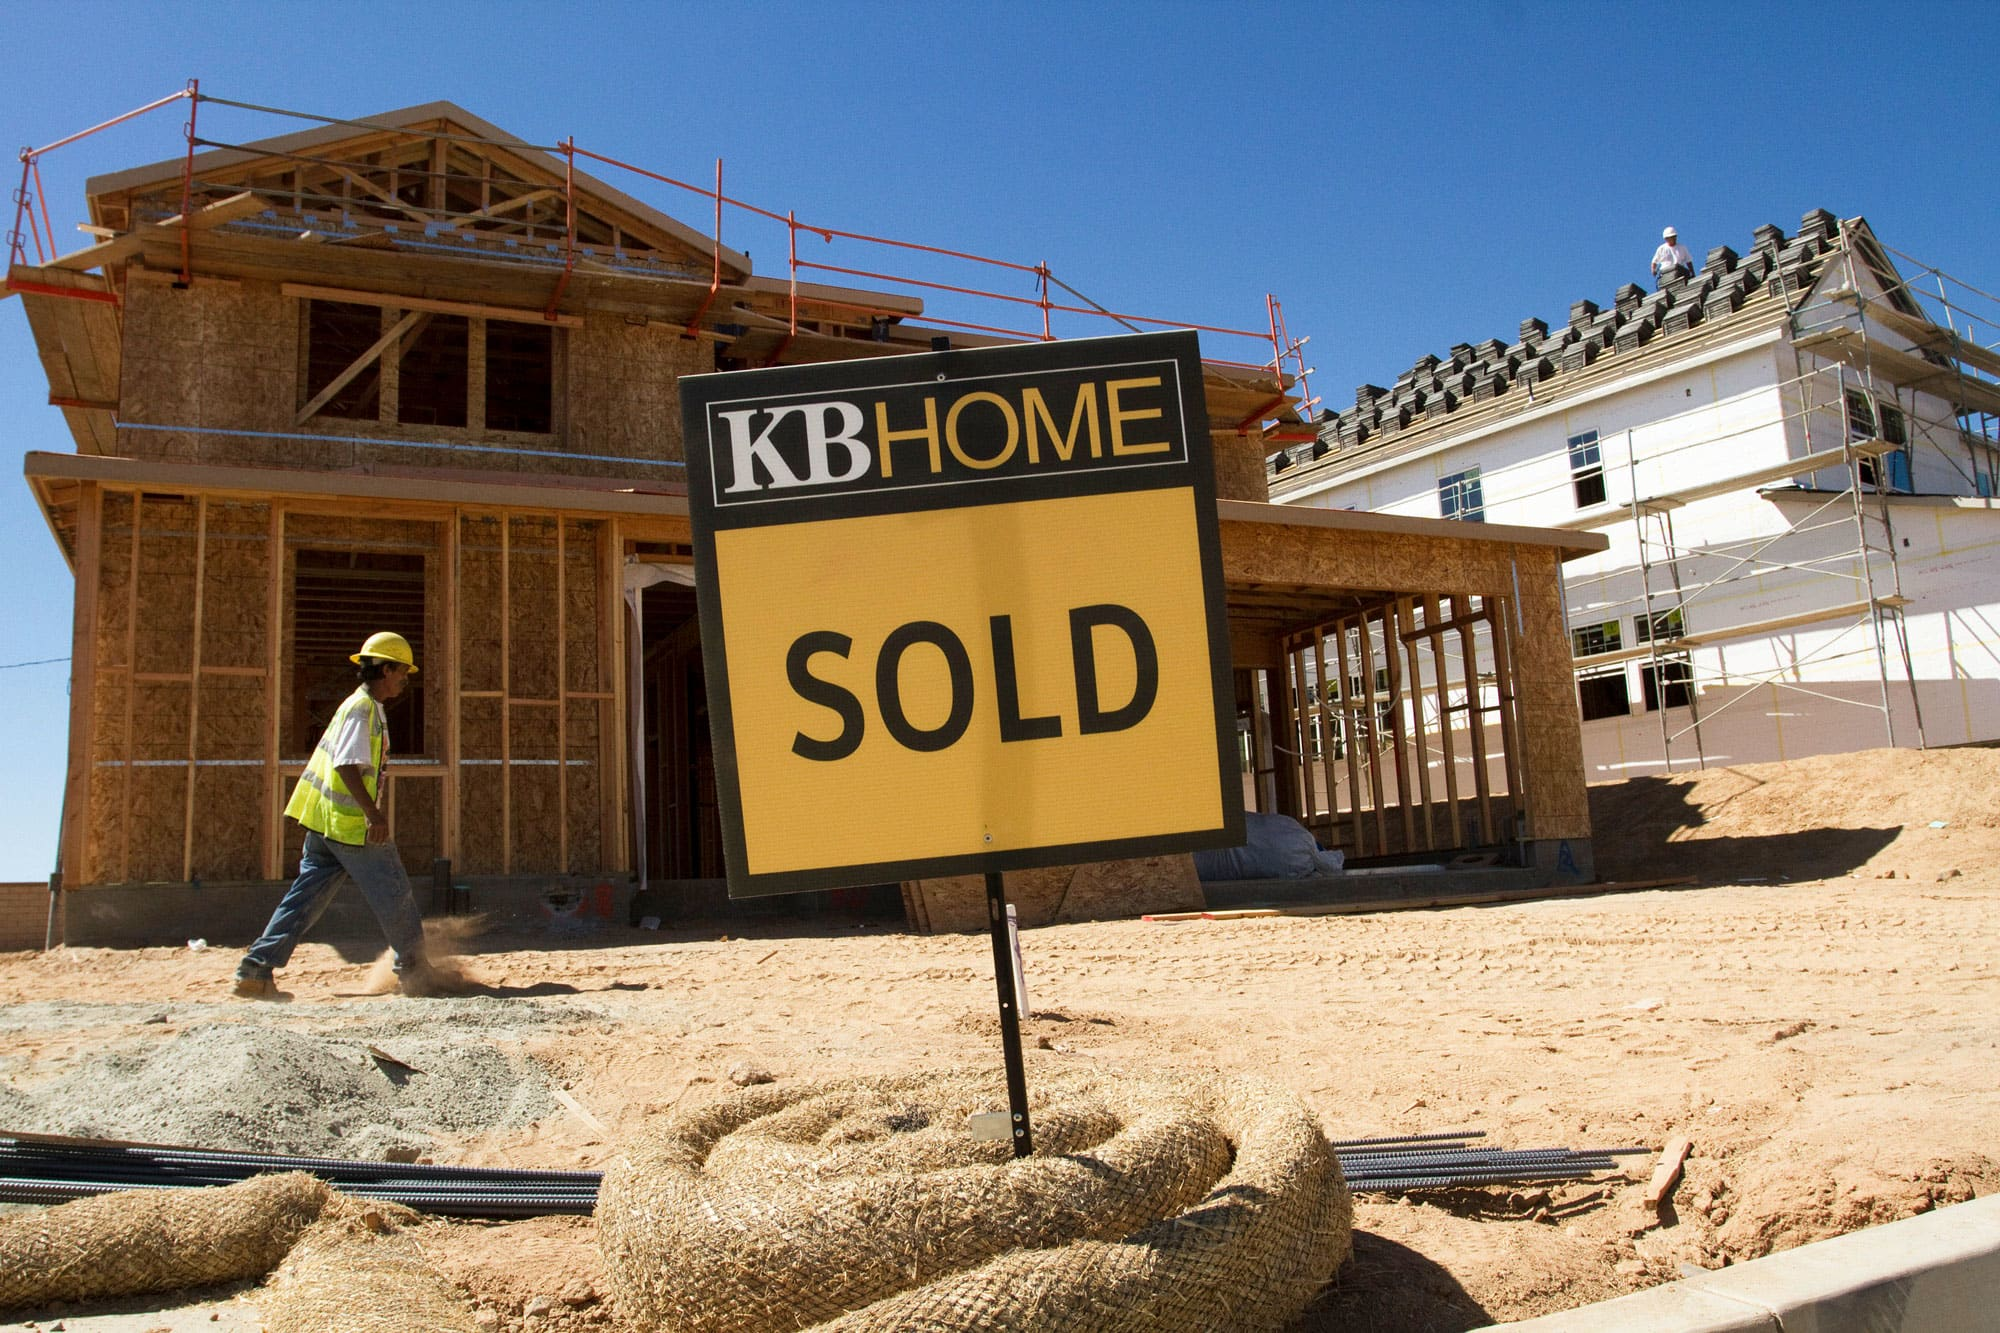 KB Home, Hertz, Ally Financial and more